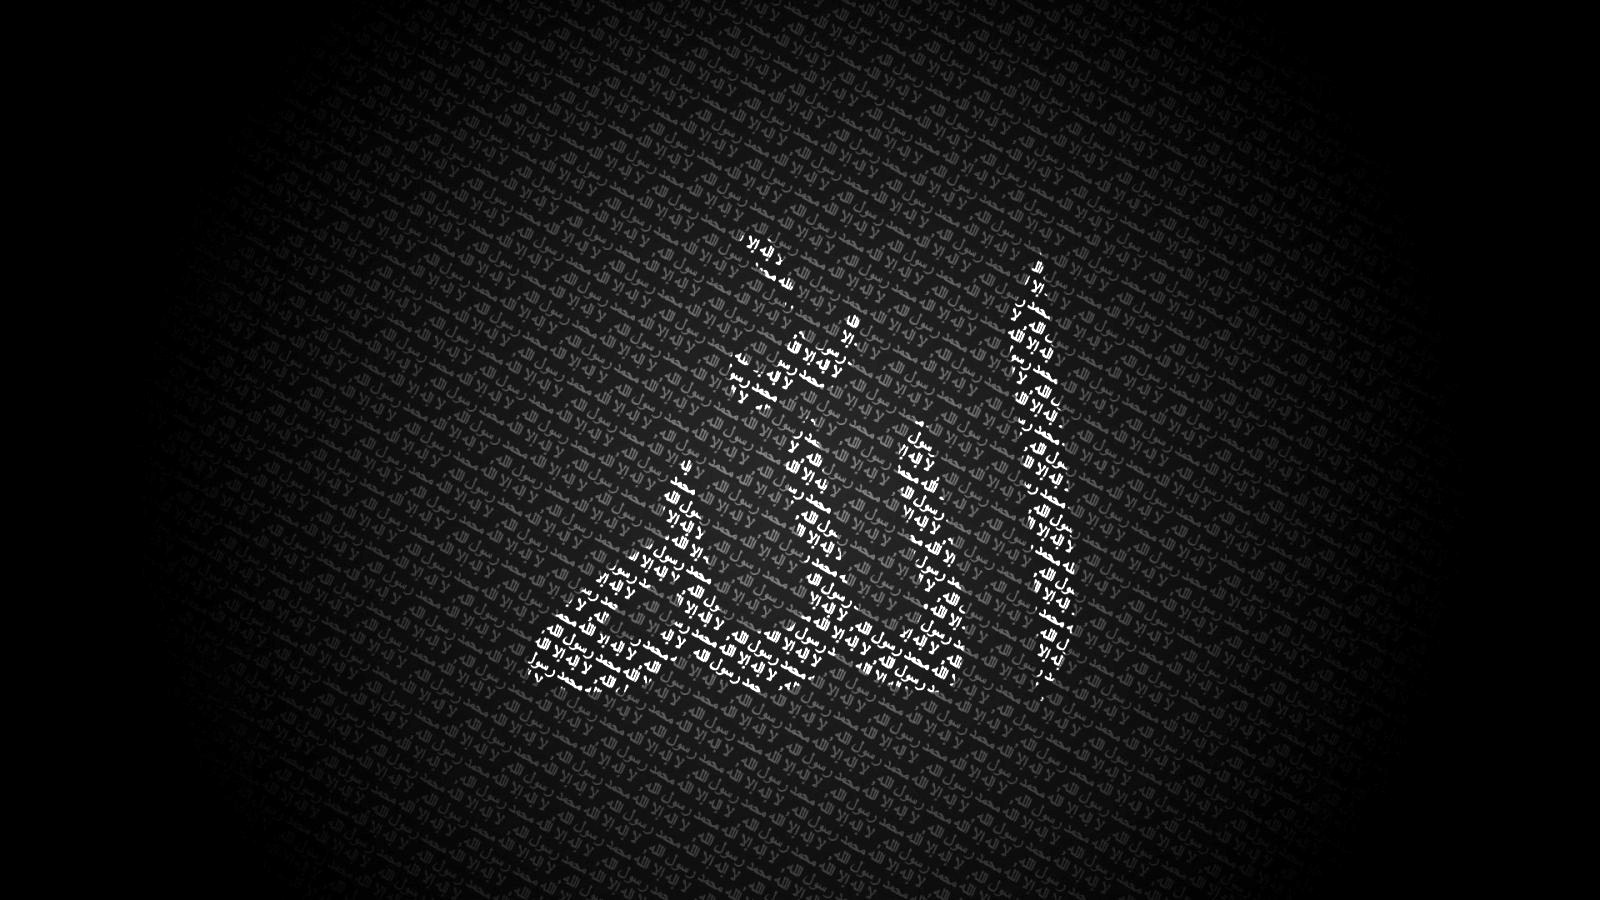 Best Wallpaper Home Screen White - islam-allah-black-and-white  Picture_365379.jpg